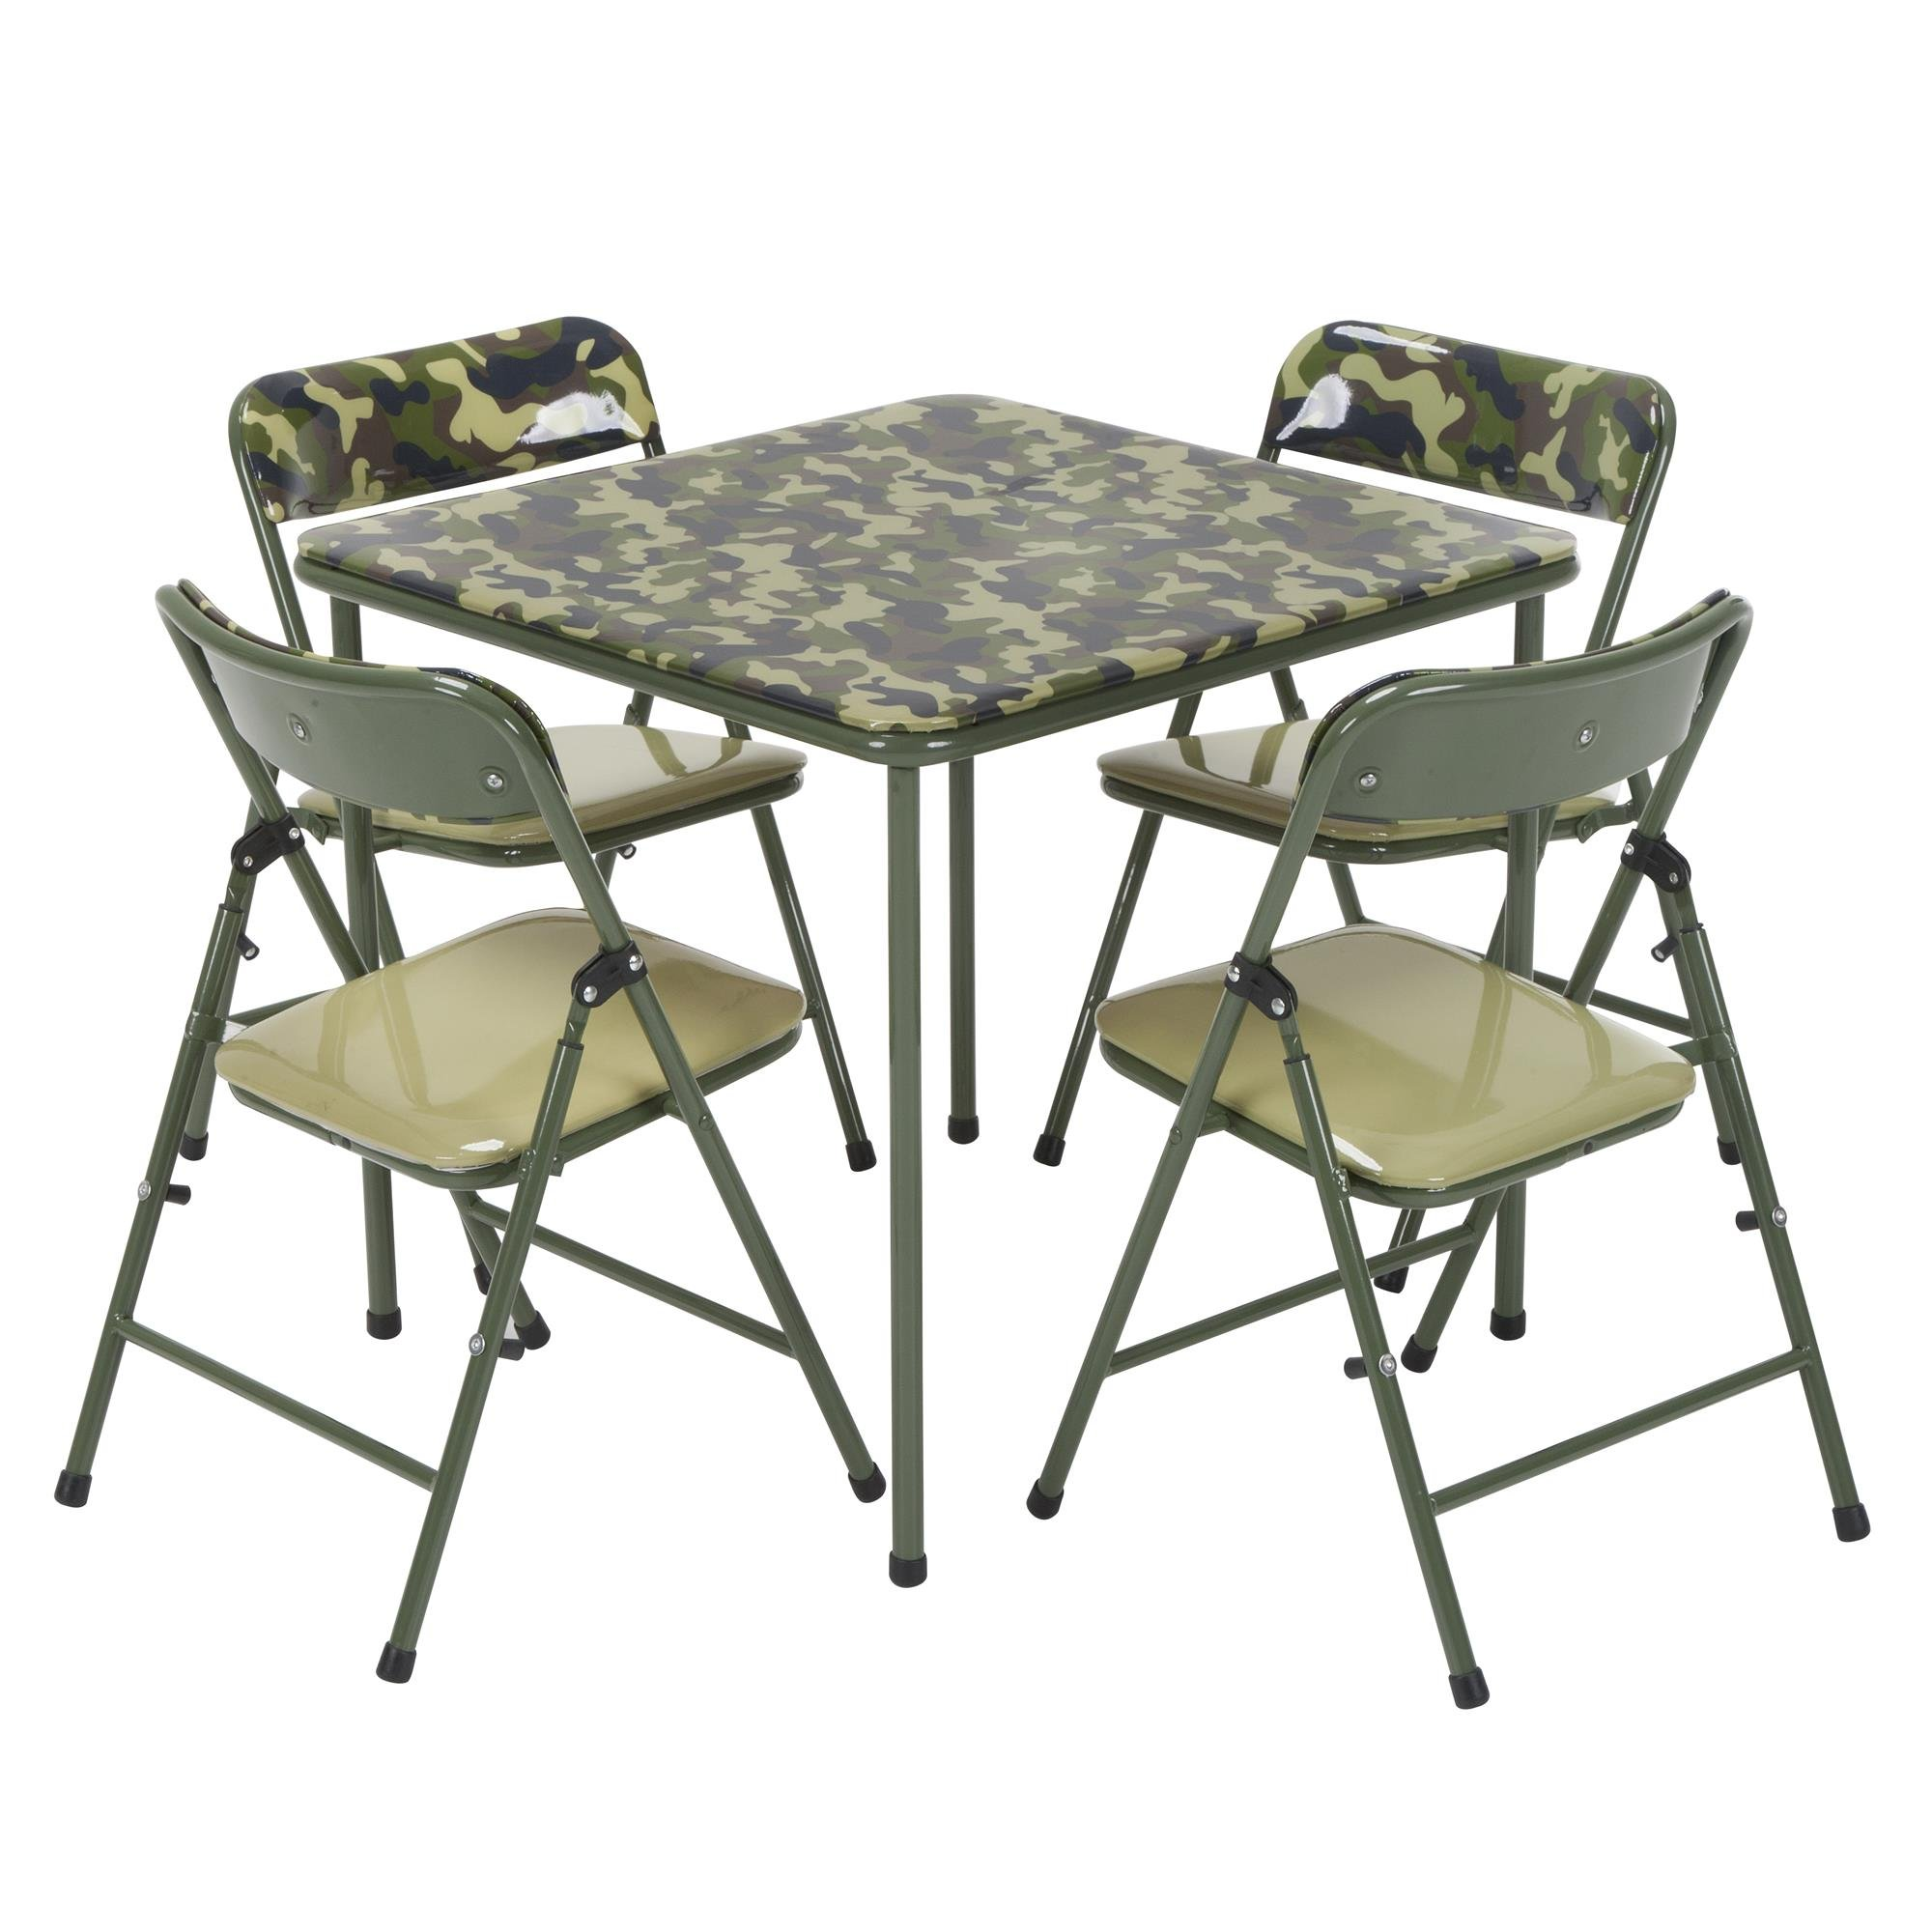 COSCO Kids Pinch-Free 5pc Vinyl Set, Camo with Green Frame